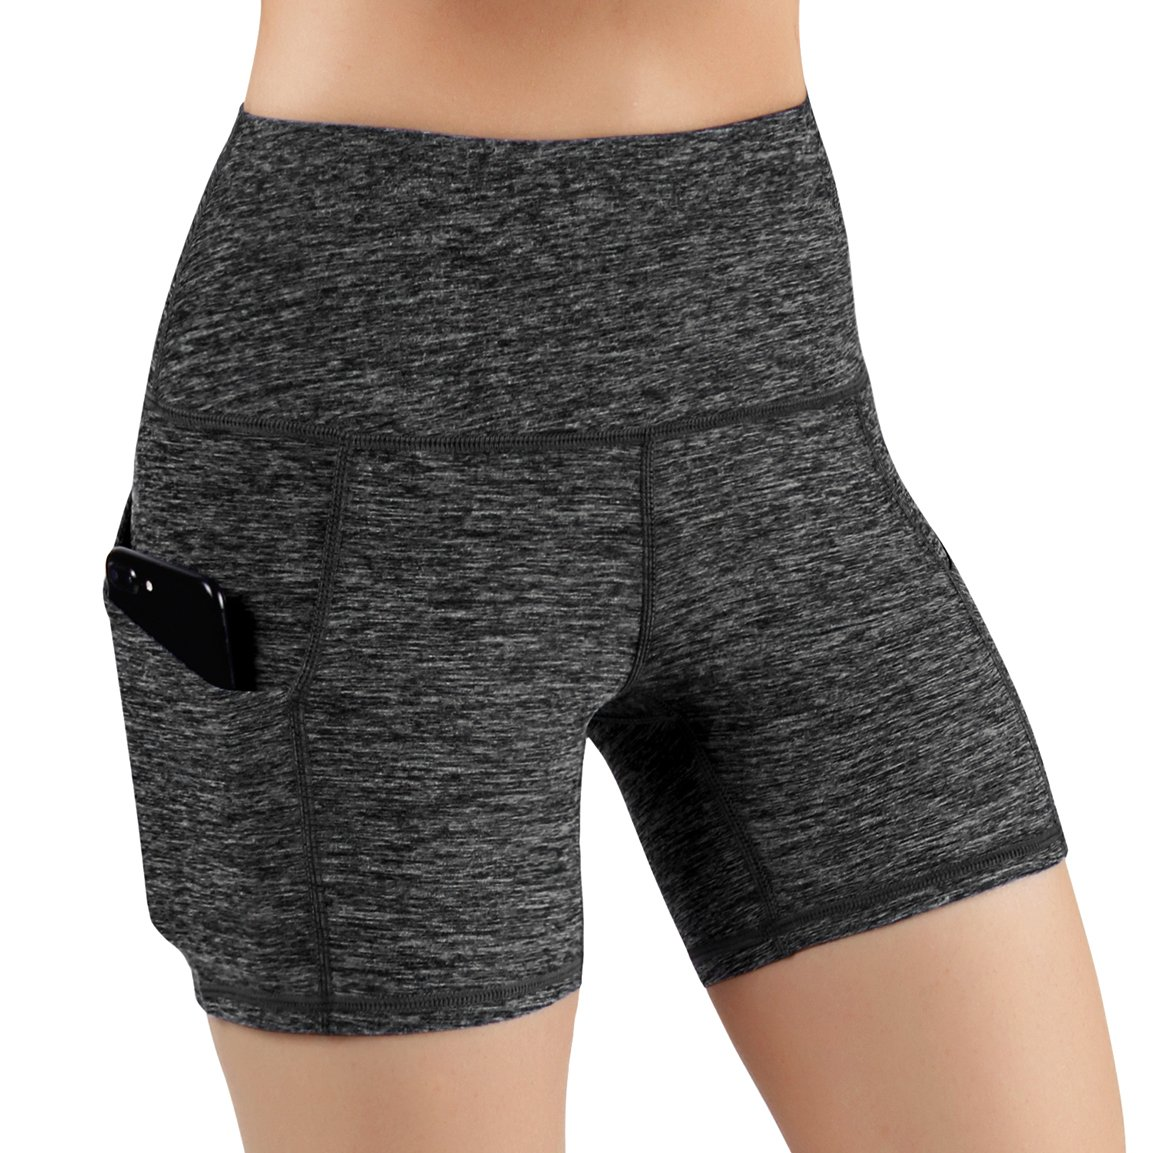 ODODOS High Waist Out Pocket Yoga Short Tummy Control Workout Running Athletic Non See-Through Yoga Shorts,CharcoalHeather,X-Small